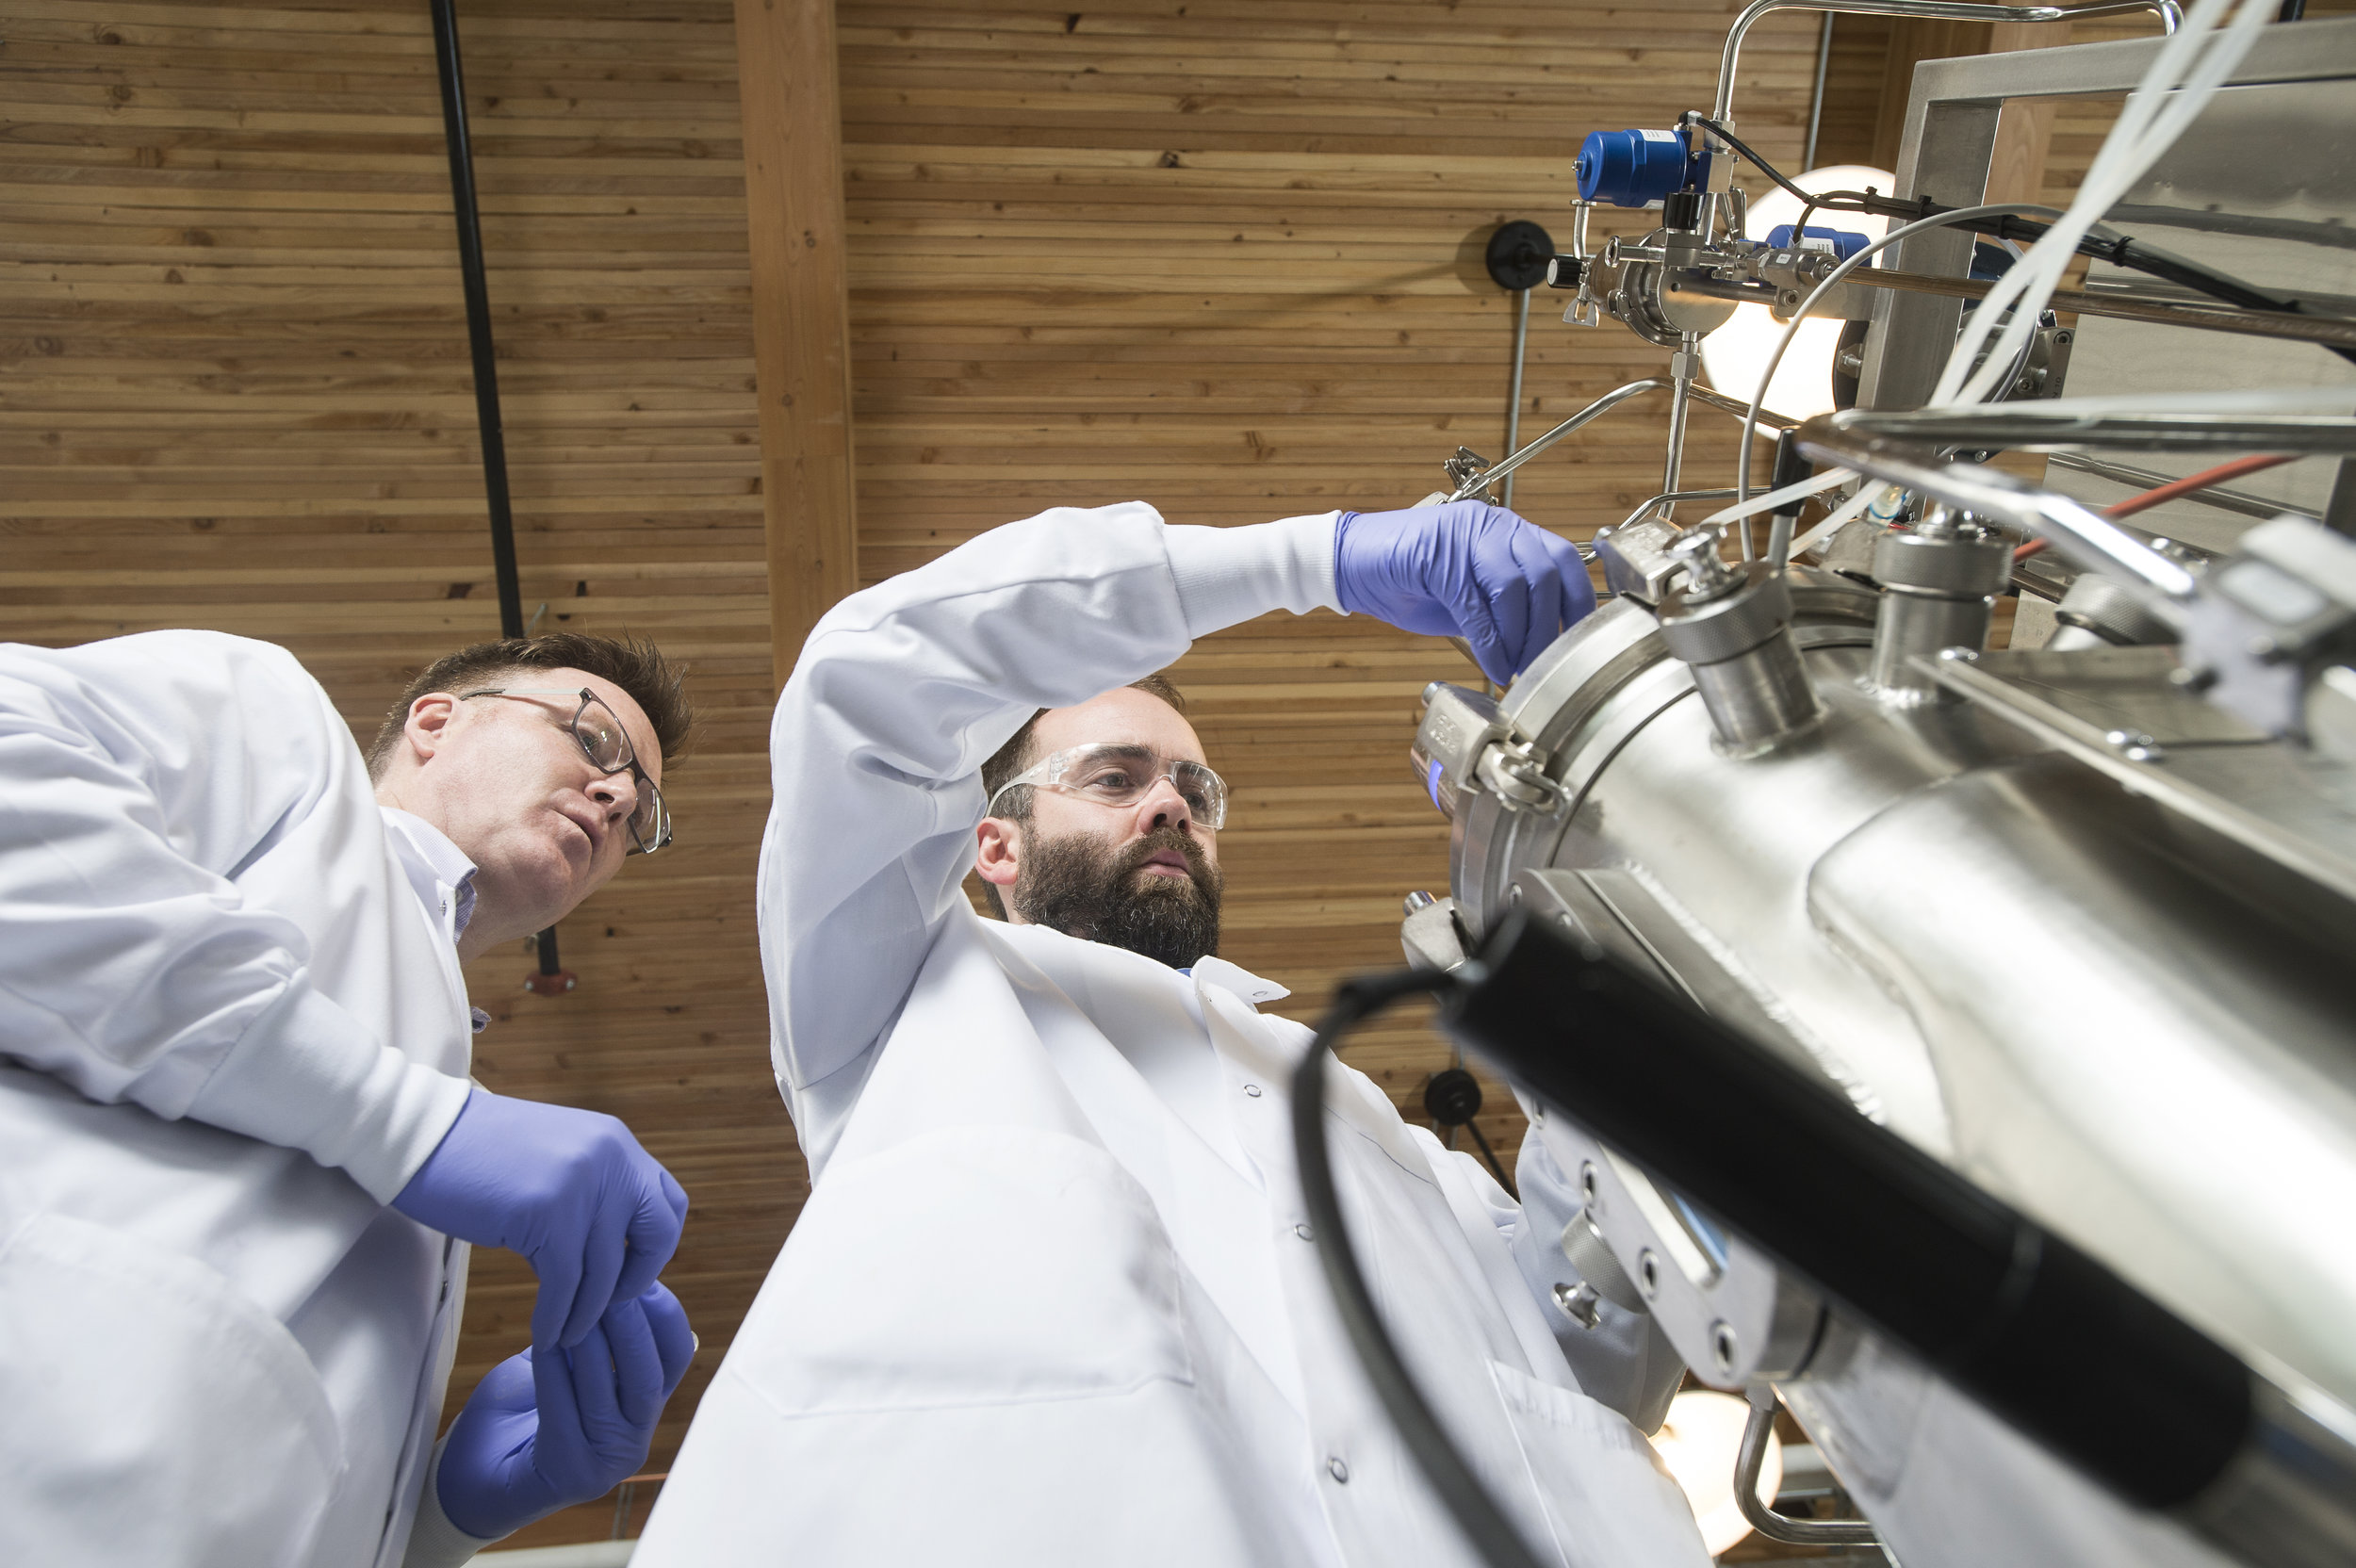 WASHINGTON STATE HAS THE 2ND HIGHEST CONCENTRATION OF STEM JOBS IN THE NATION -